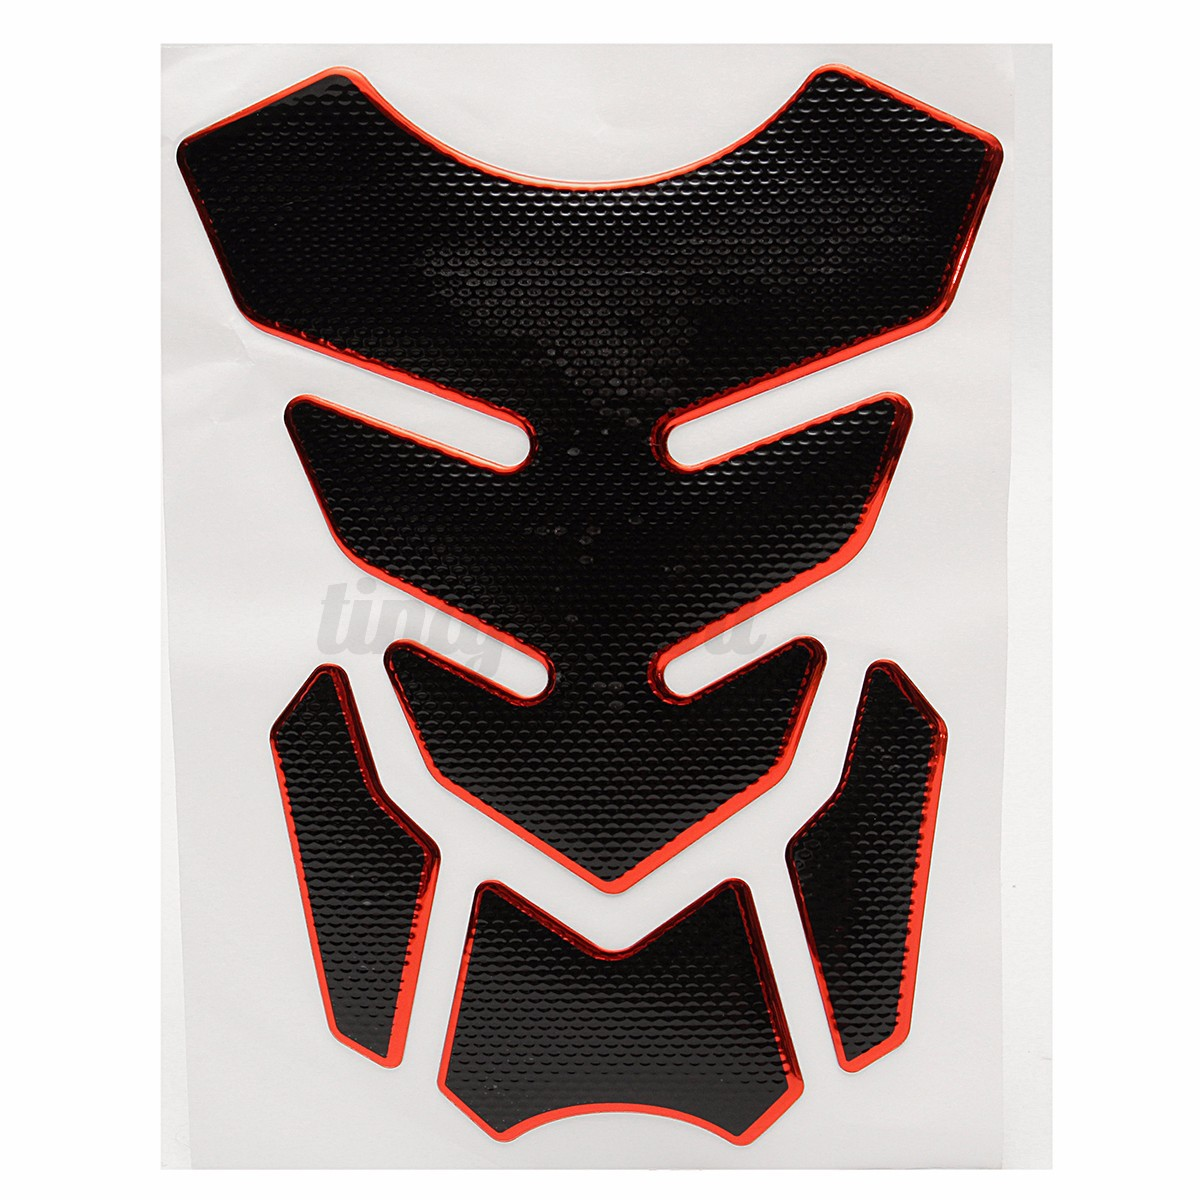 Red Decal Universal Motorcycle 3D Rubber Sticker Gas Fuel Oil Tank Pad Protector